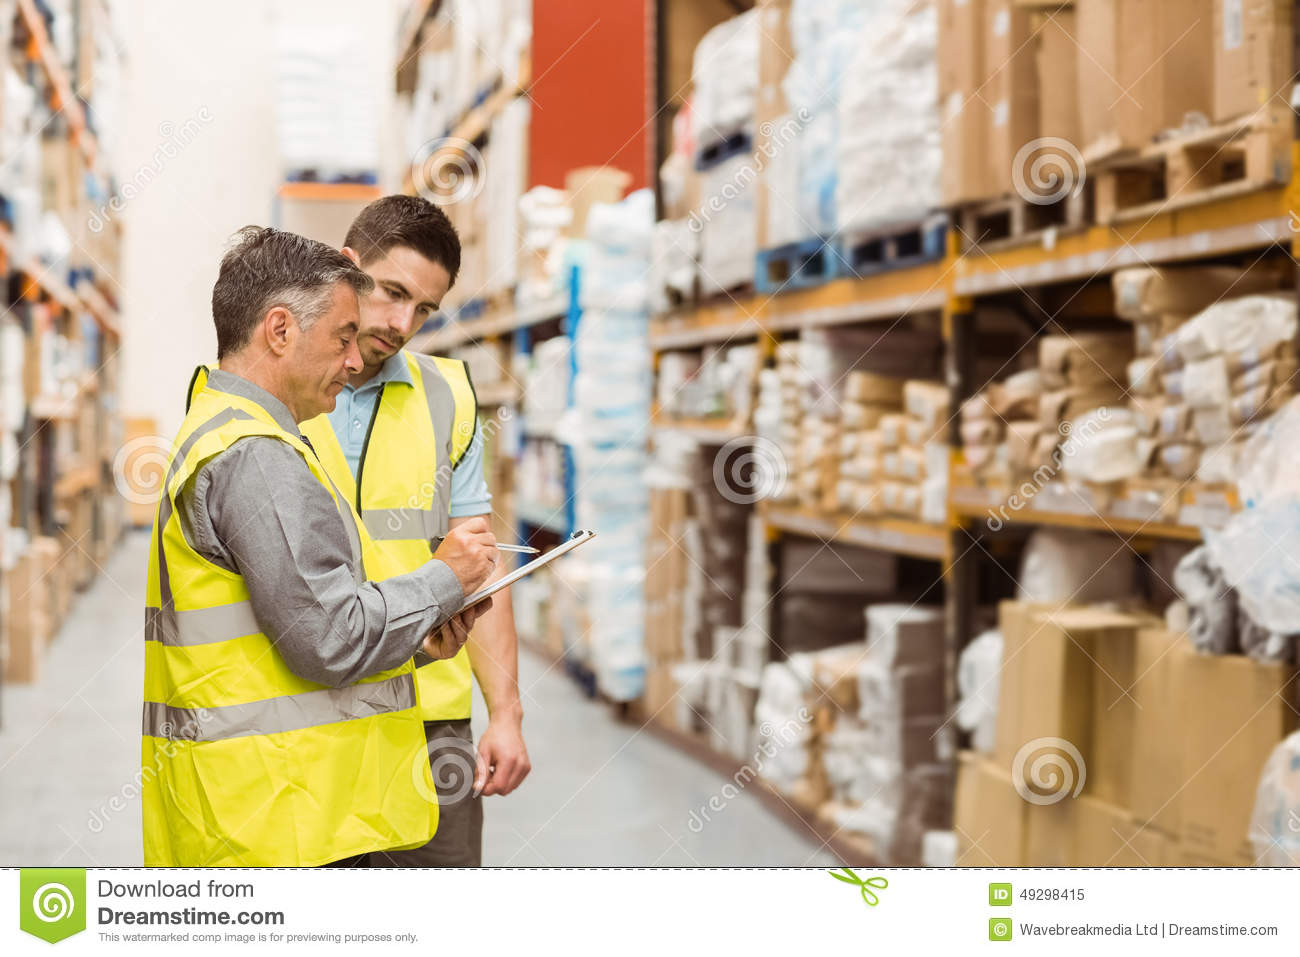 how to work in a warehouse